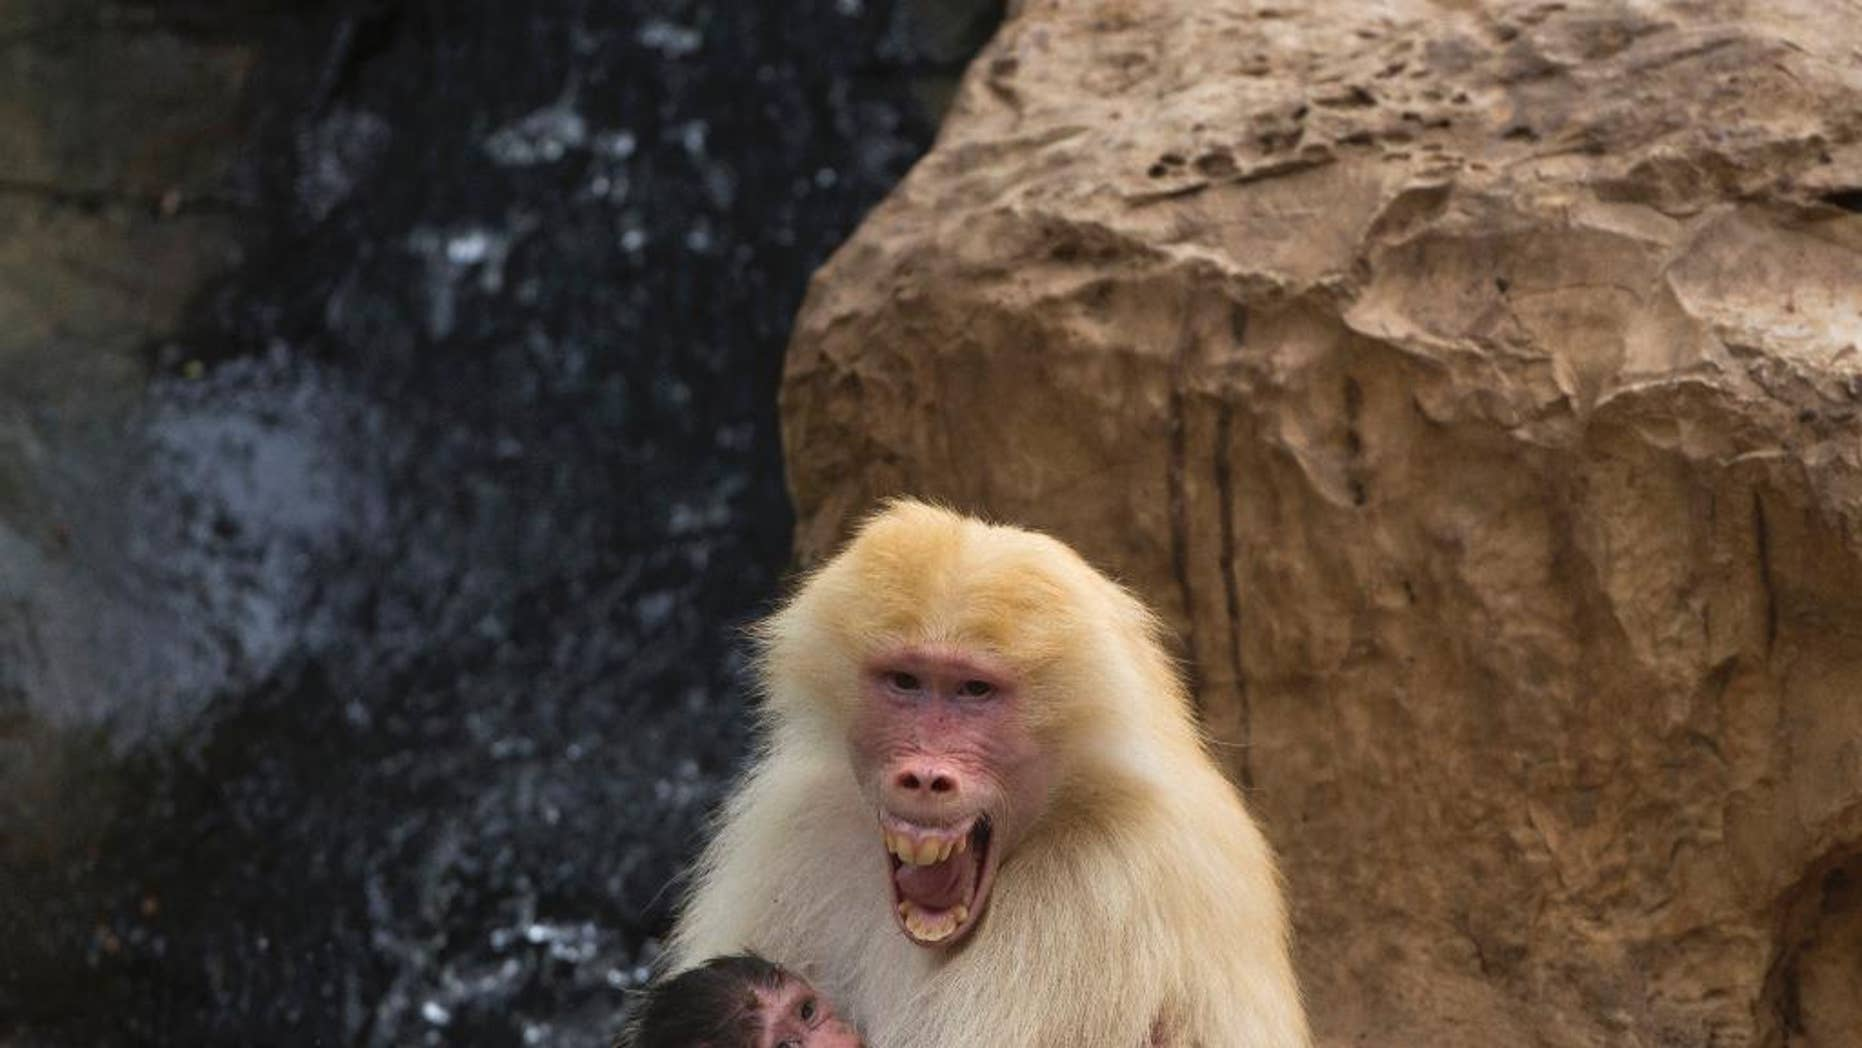 FILE - In this Wednesday, Sept. 29, 2015 file photo, Sahara, a rare red-haired female Hamadryas Baboon holds 3 weeks old dark-furred baby in the Ramat Gan Safari Park near Tel Aviv, Israel. A new study in France shows that baboons can make human-like vowel sounds, and its authors say the discovery could help scientists better understand the evolution of human speech. The study was published in the journal Plos One on Wednesday Jan. 11, 2017 by a team of scientists. (AP Photo/Ariel Schalit, File)